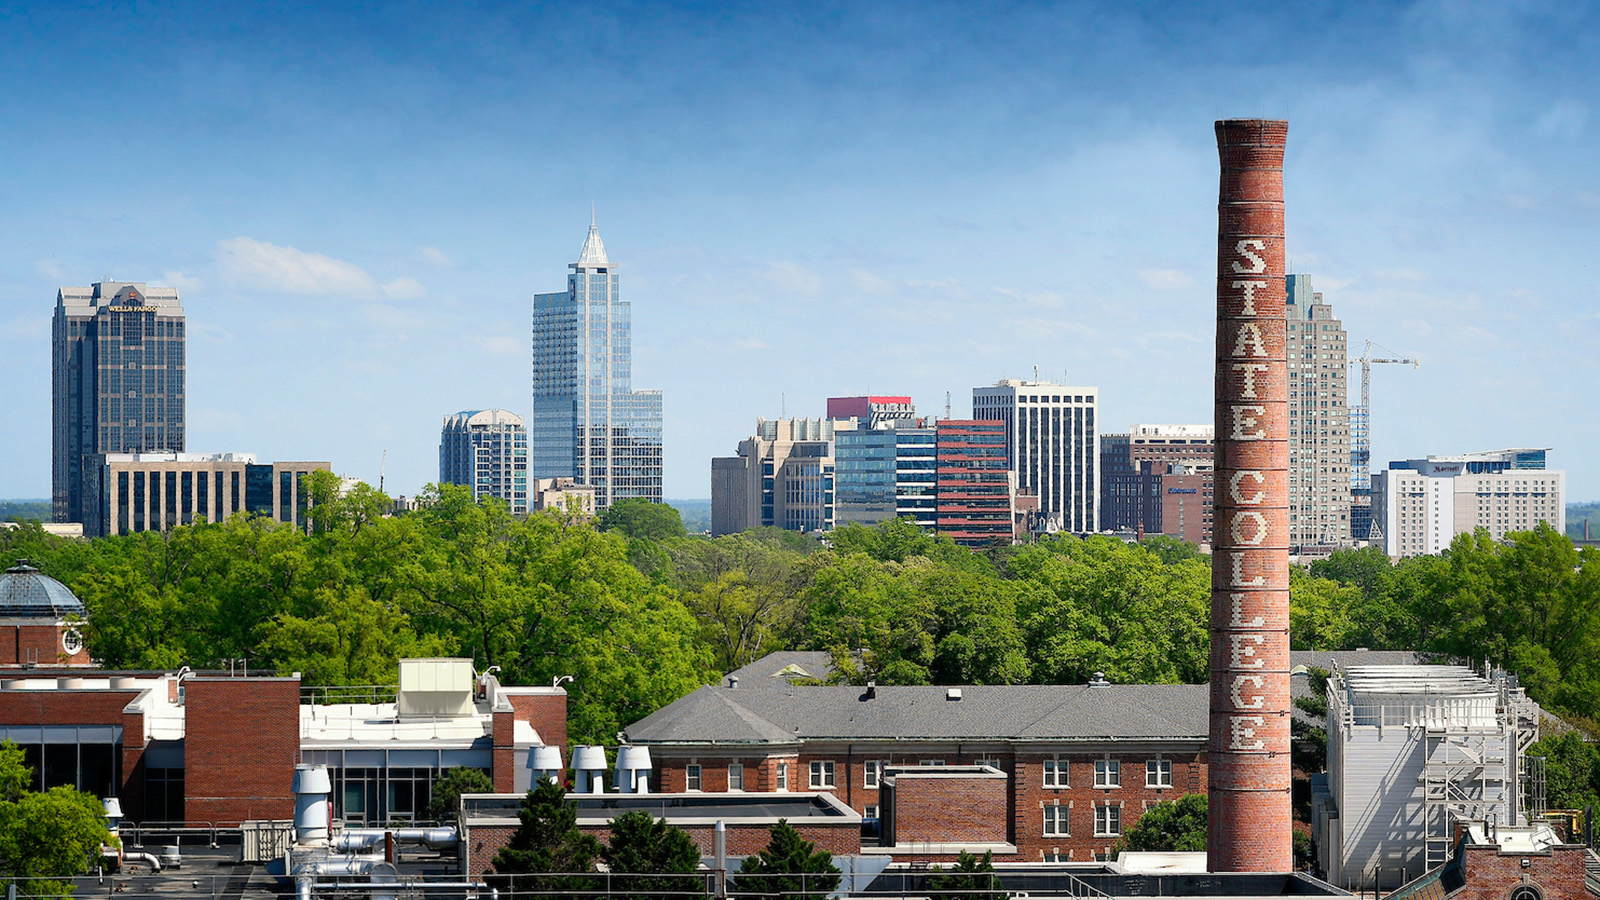 The skyline of downtown Raleigh from NC State's campus.